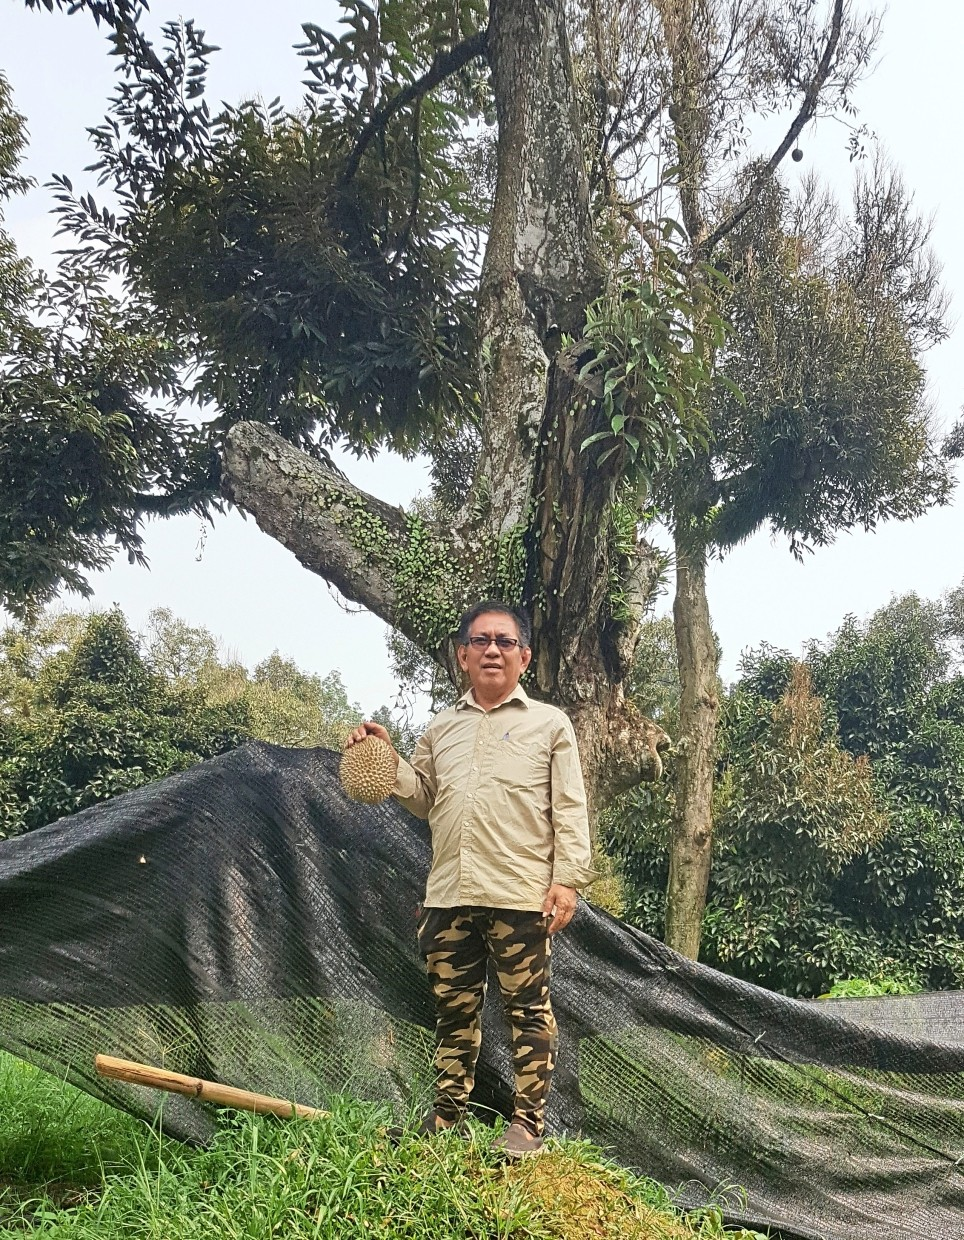 Frankie with his first Musang King durian tree in his orchard in Karak, Pahang.